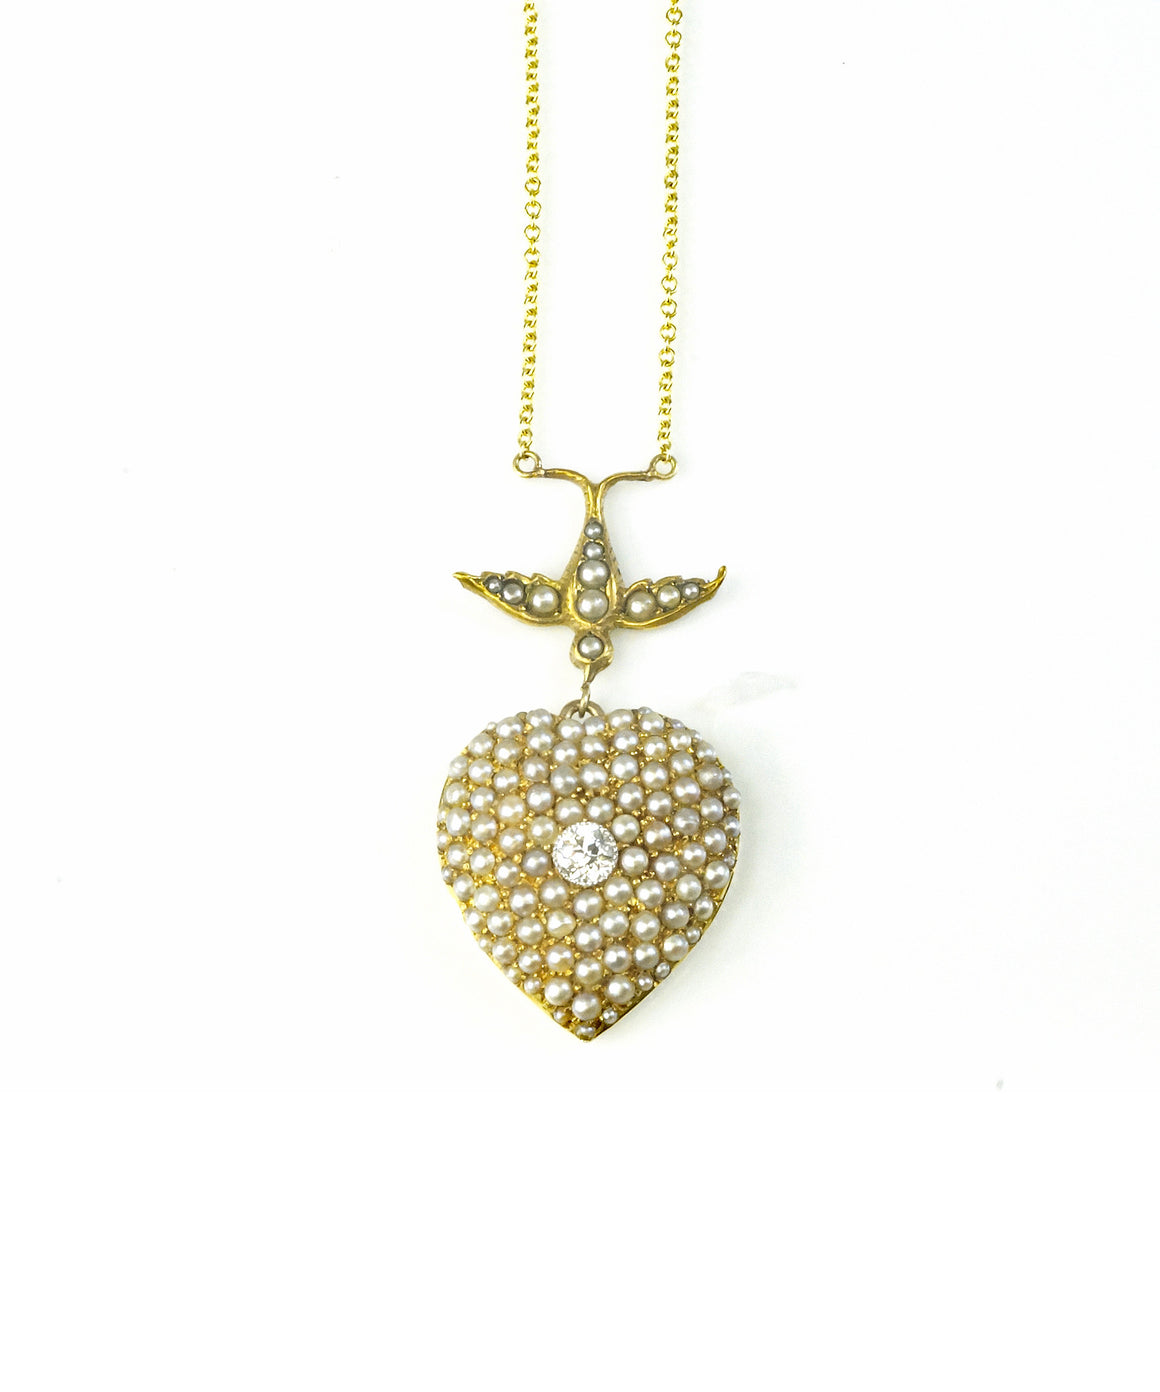 English bird and heart pendant